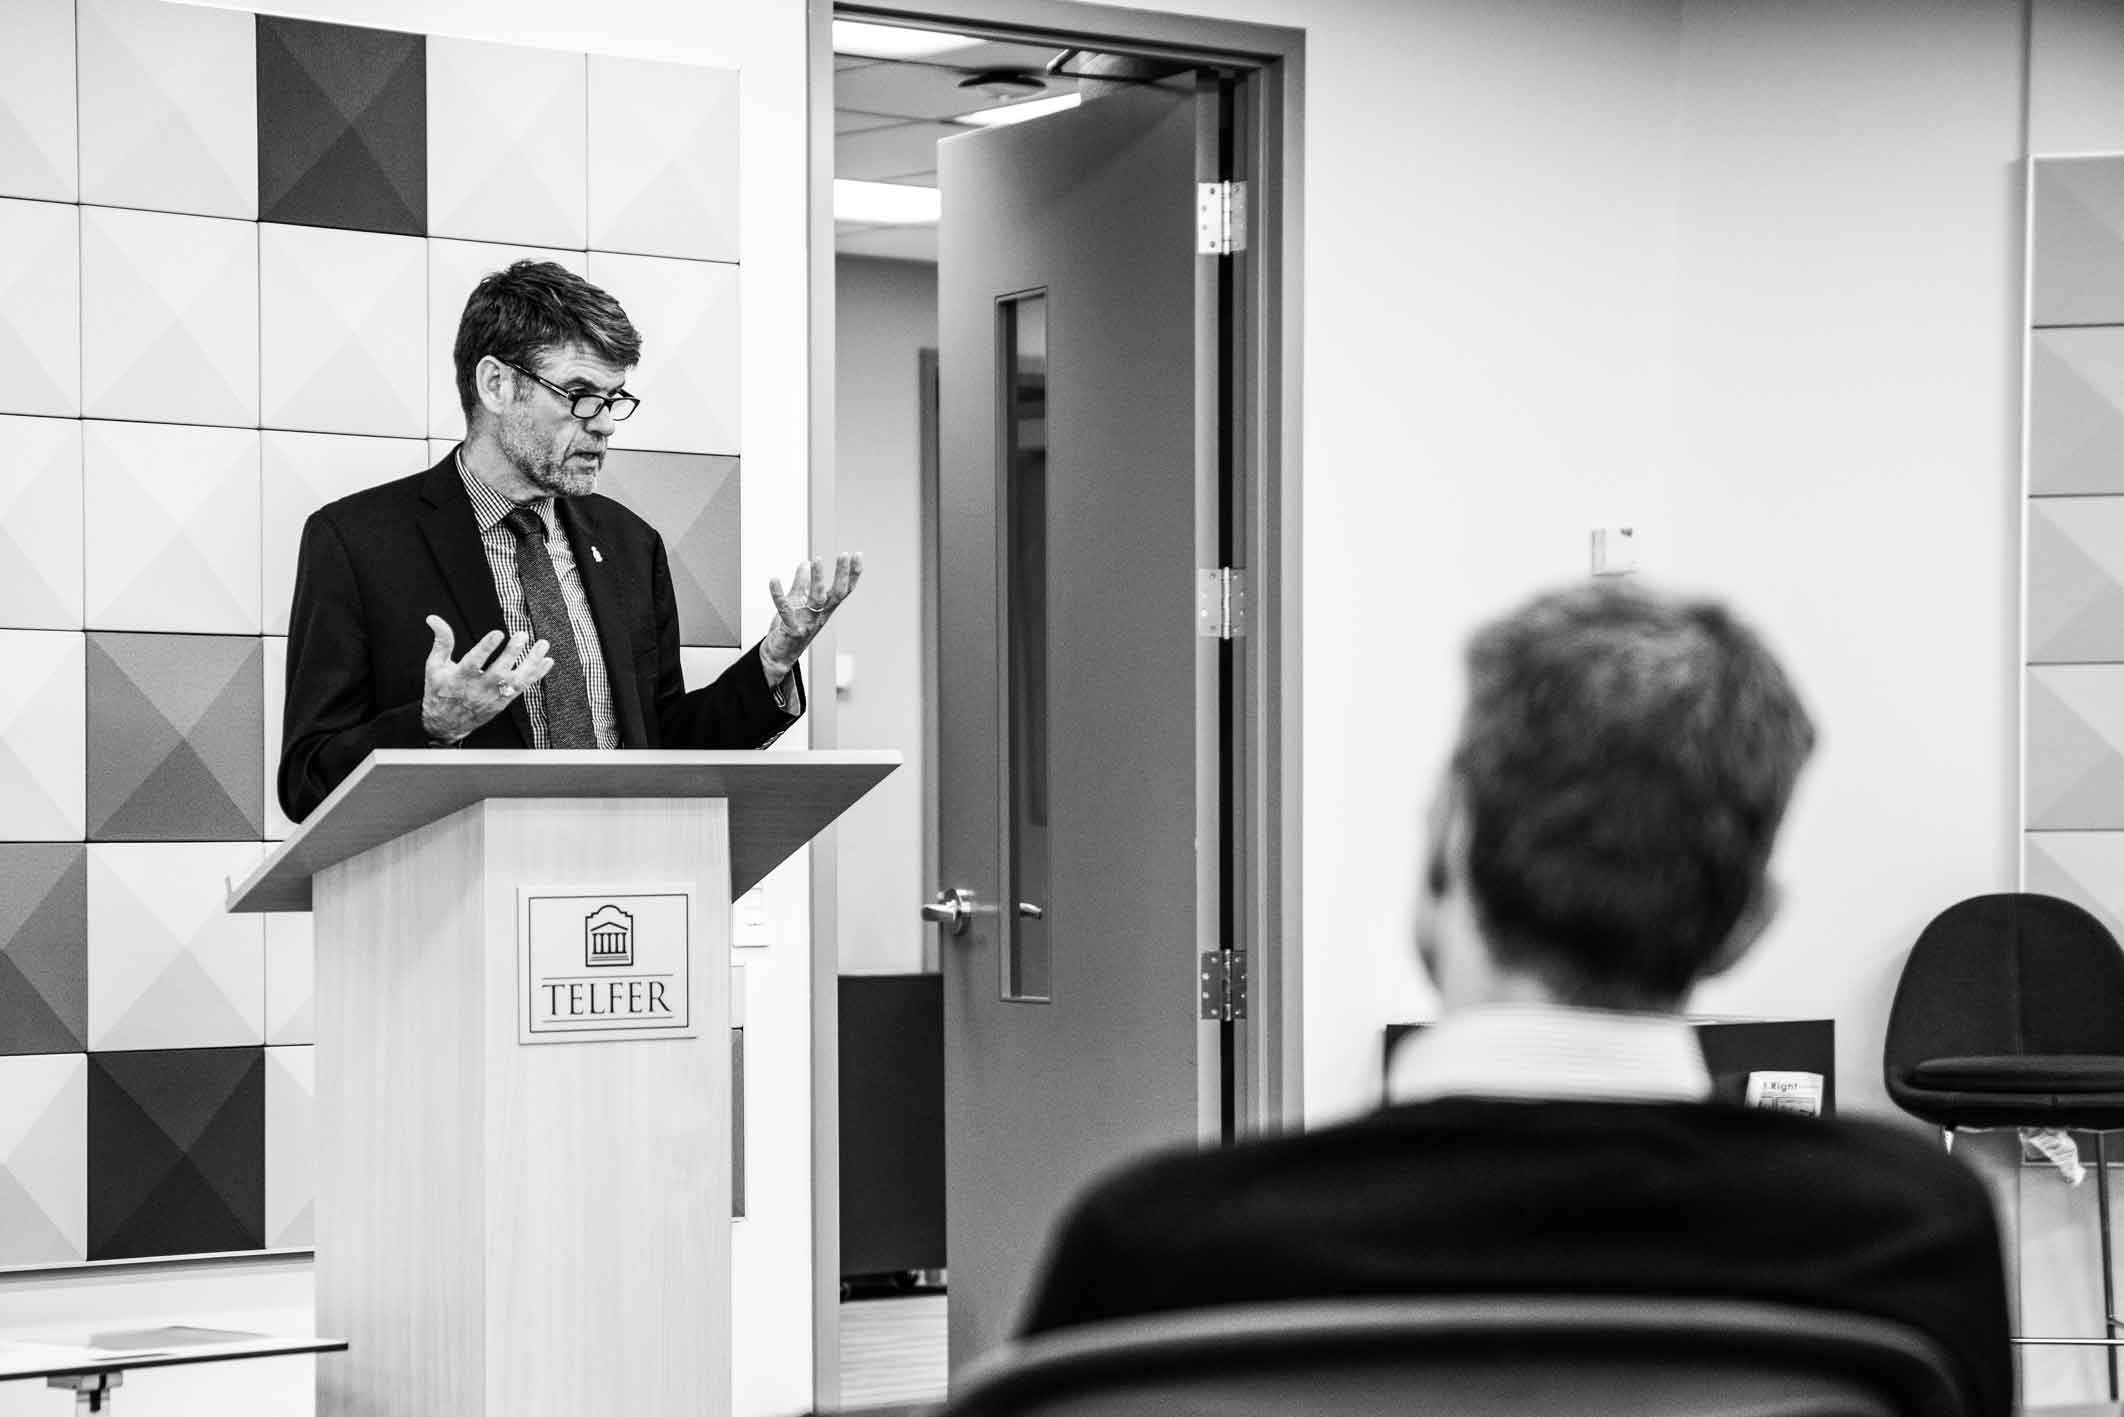 Cybersecurity expert Paul Rutherford presenting at the Canadian Defence Procurement conference at the Telfer School of Management in Ottawa